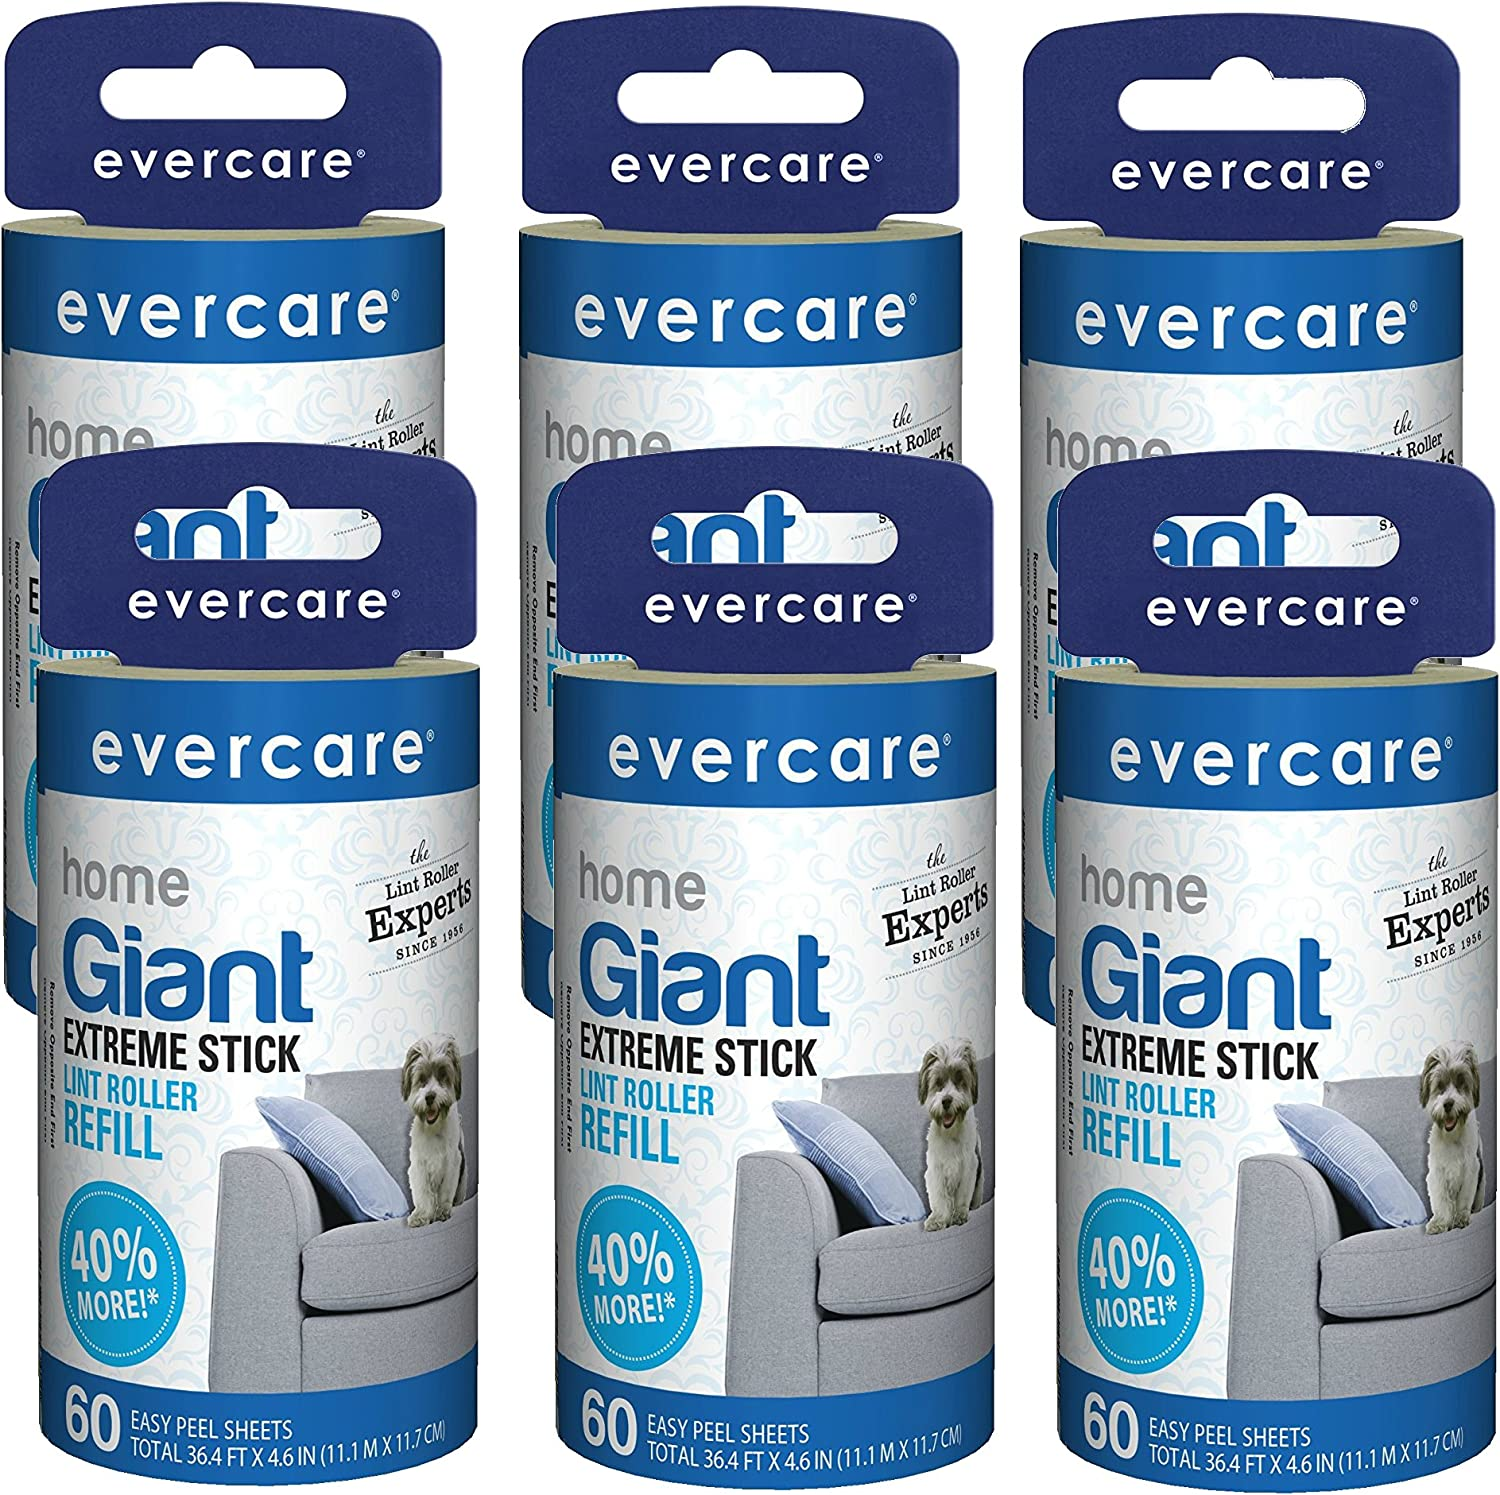 Evercare Giant Adhesive Lint Roller REFILL - 6 pack